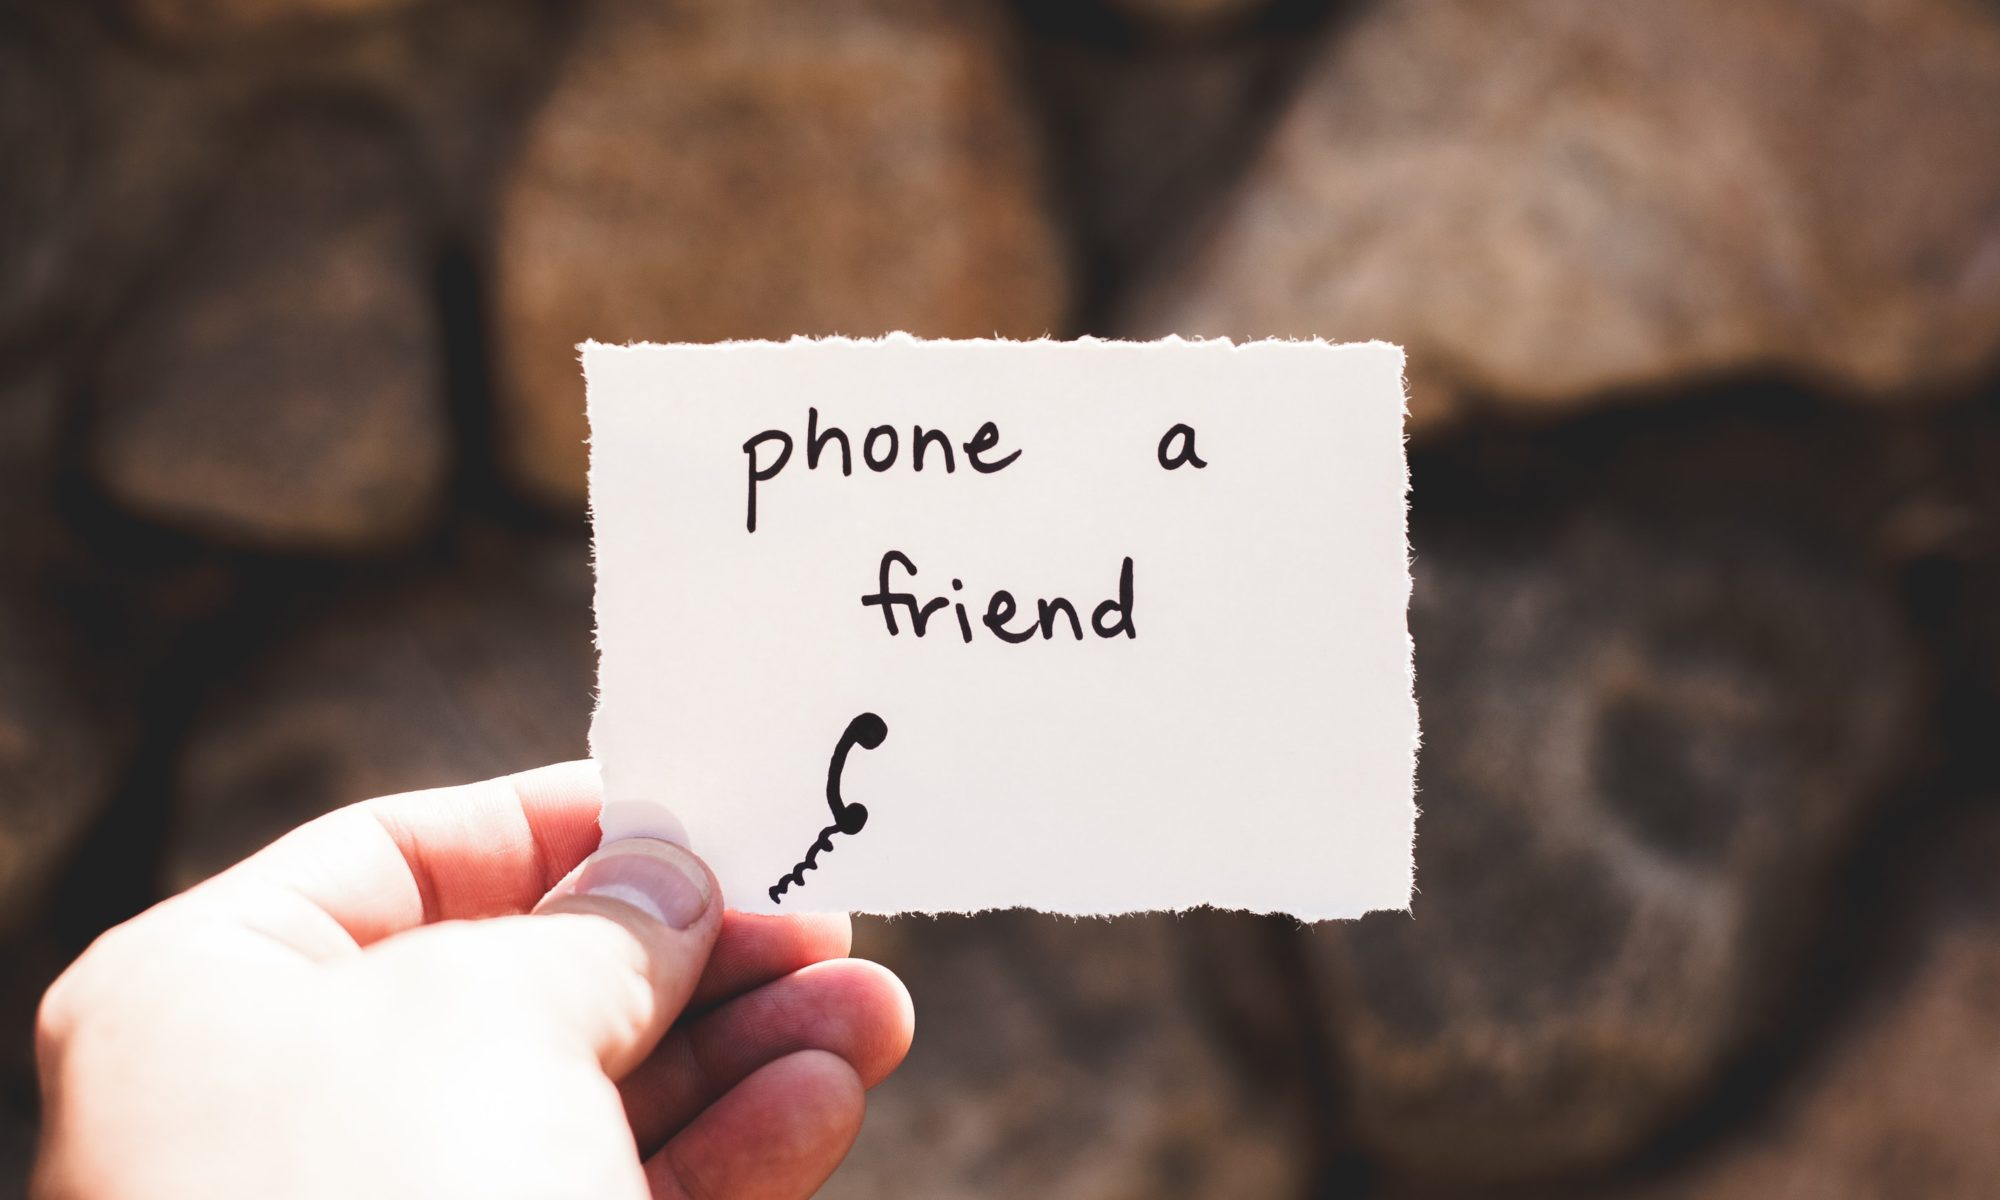 Piece of paper that says phone a friend